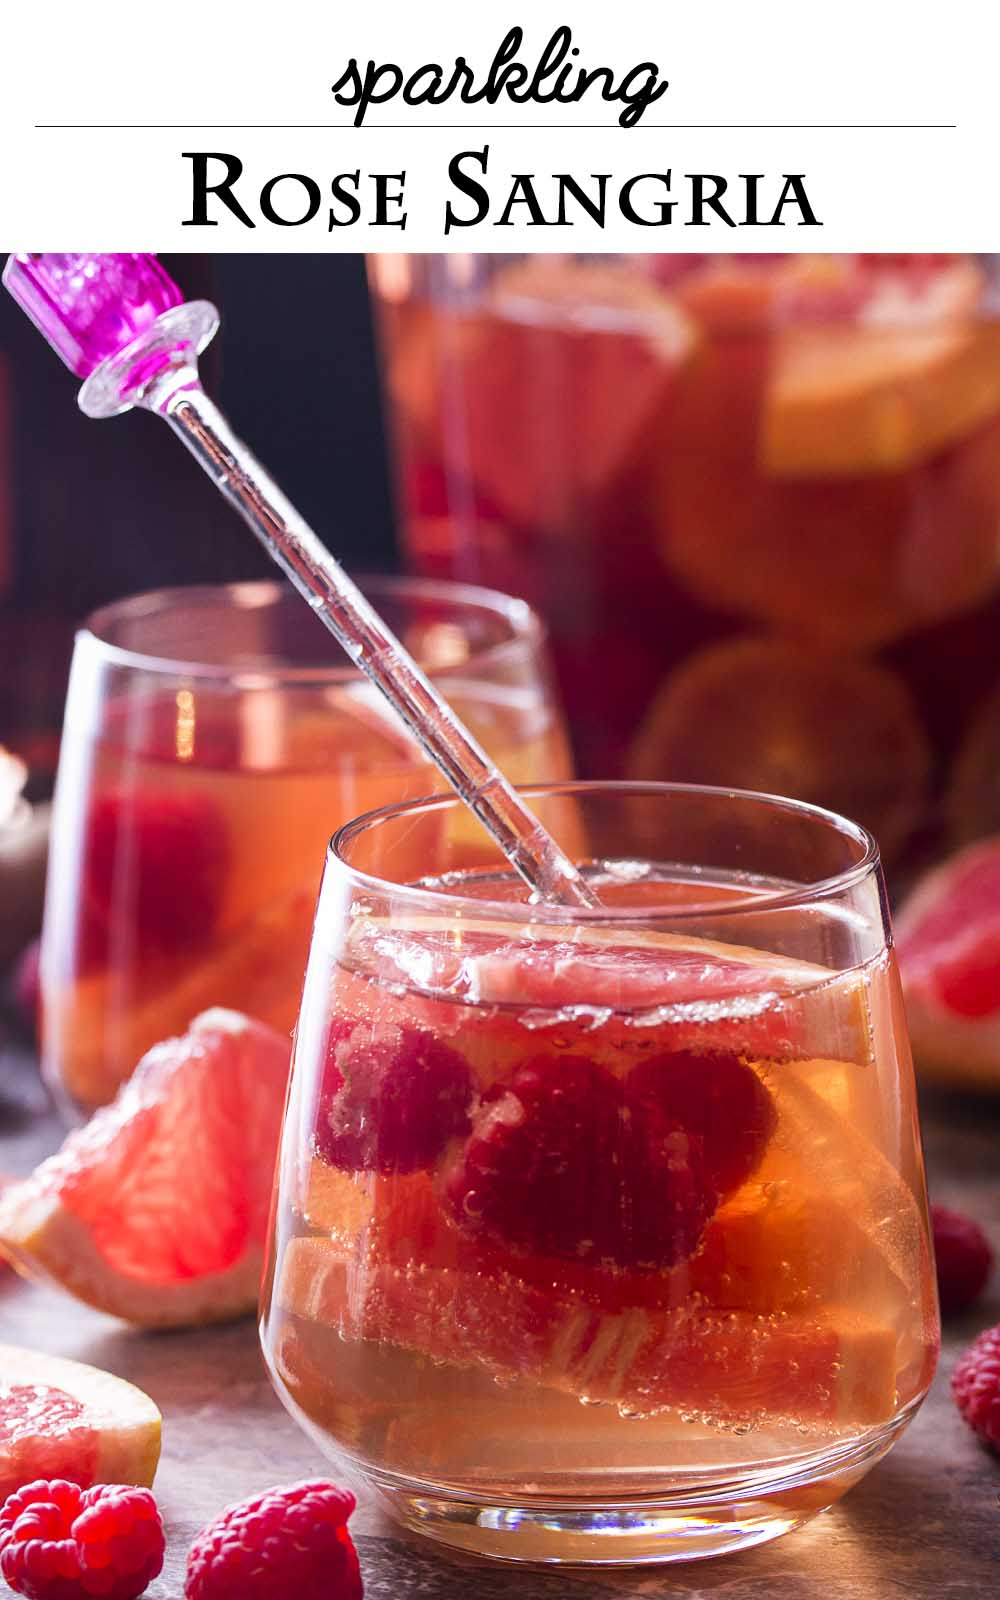 Sparkling rose sangria is made from rose still and sparkling wines, fortified with brandy and orange liqueur, then mixed with raspberries and winter citrus, like blood oranges and pink grapefruit. Great for romantic dinners, winter and spring parties, and valentine's day! | justalittlebitofbacon.com #cocktailrecipe #drinkrecipe #sangria #valentinesday #datenight #cocktails #drinks